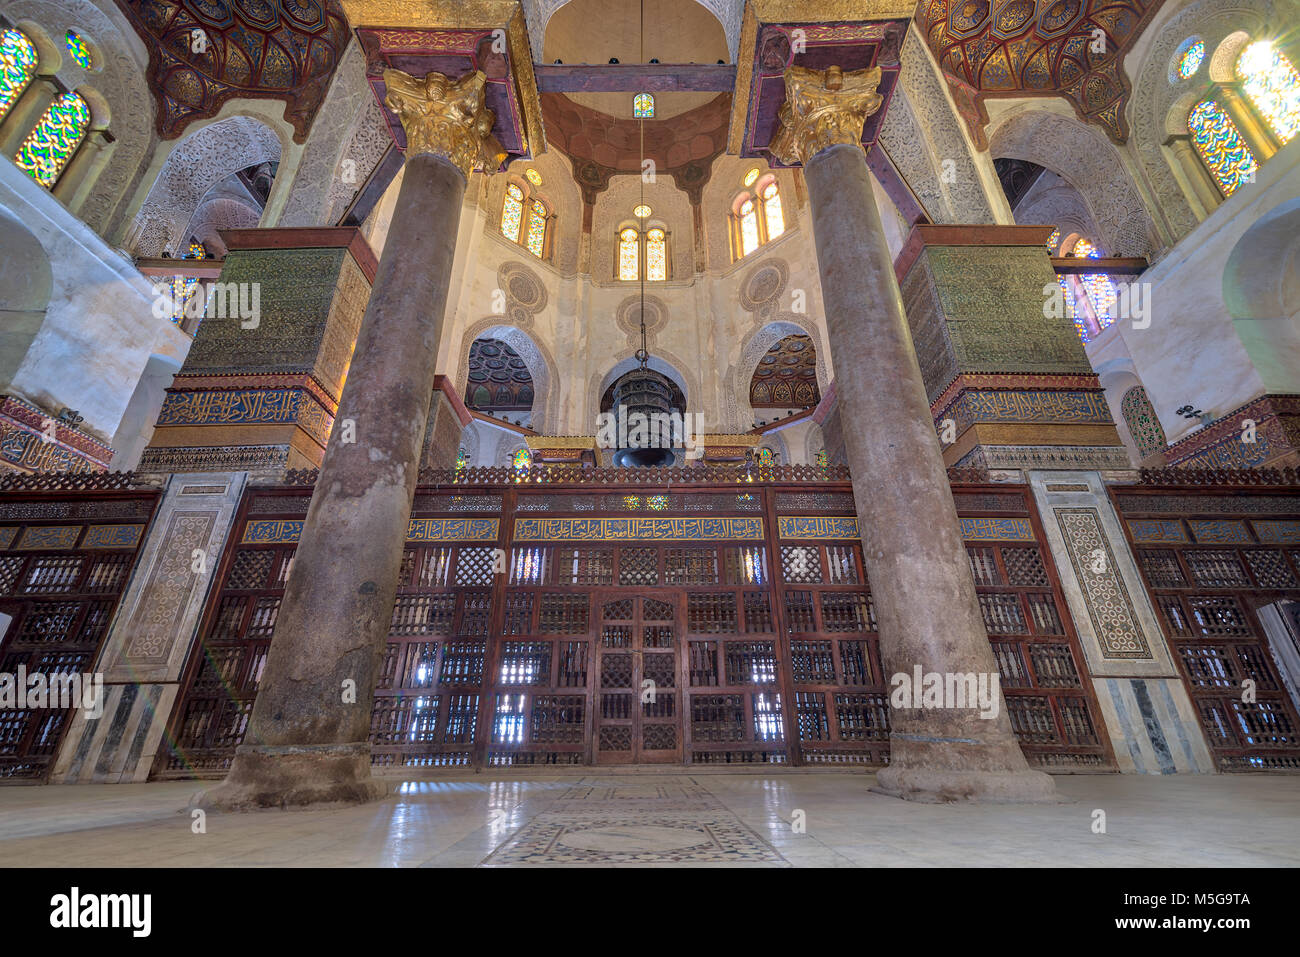 Interior view of   the mausoleum of Sultan Qalawun, part of Sultan Qalawun Complex built in 1285 AD, located in - Stock Image